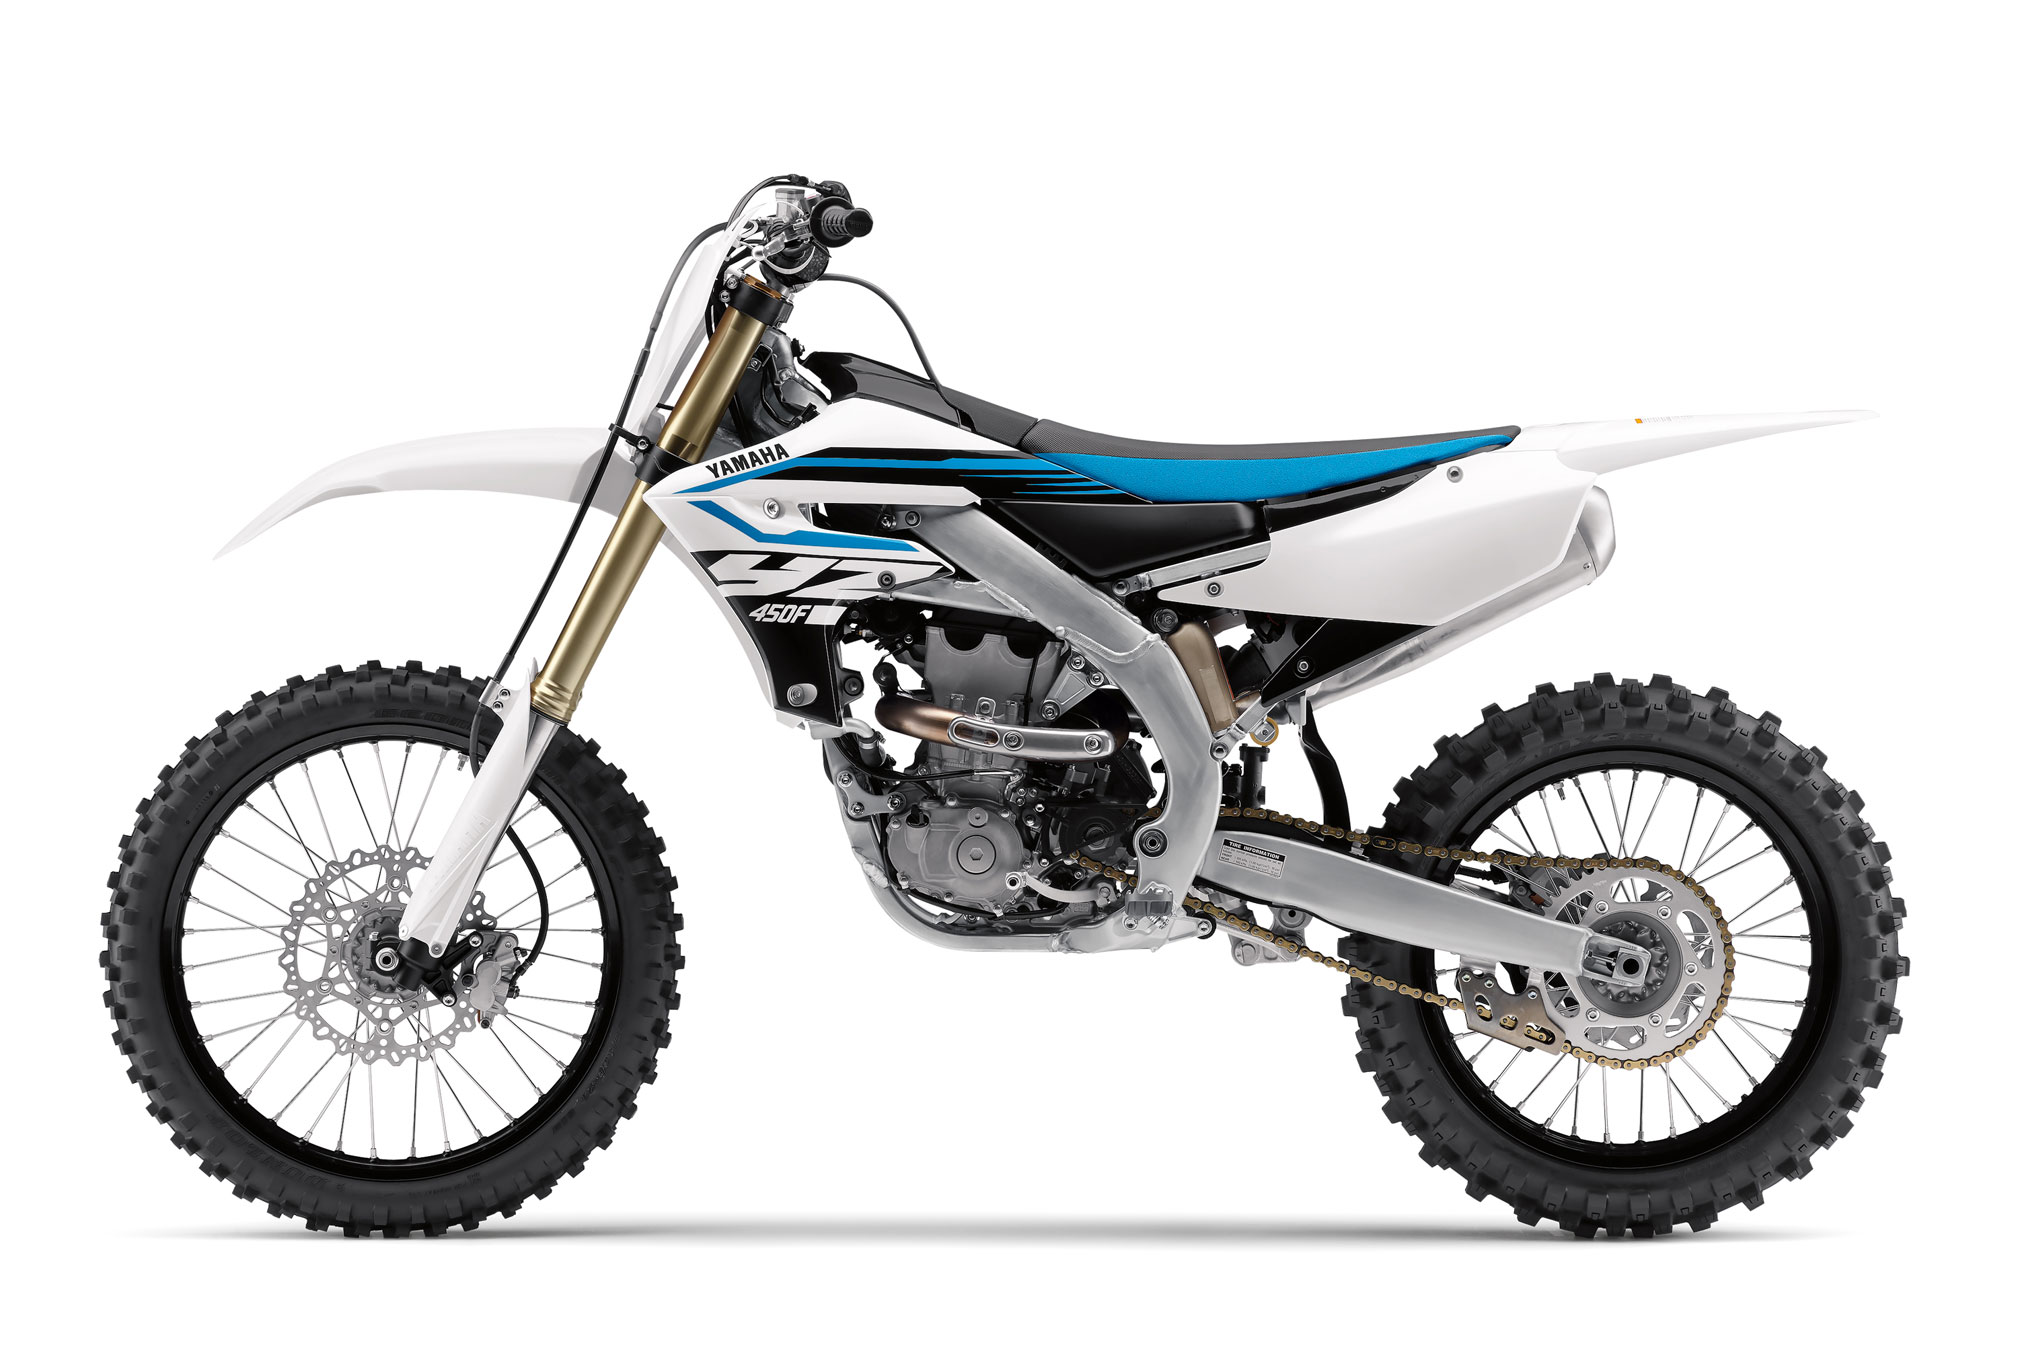 2018 yamaha yz450f review totalmotorcycle for Yamaha new motorcycles 2018